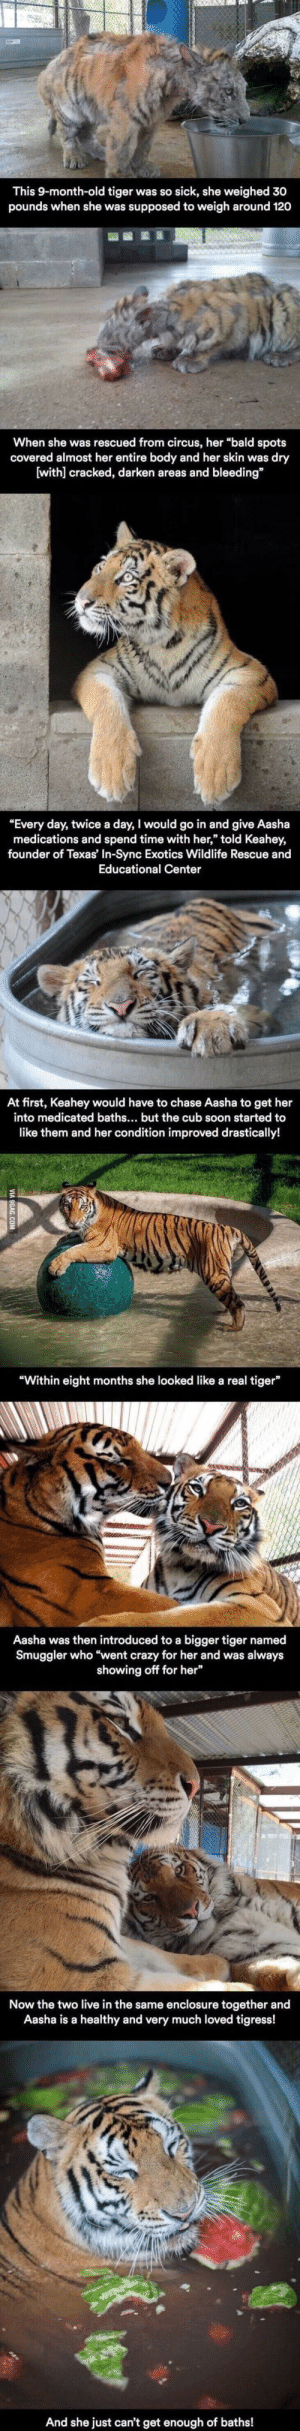 """Beautiful, Crazy, and Life: This 9-month-old tiger was so sick, she weighed 30  pounds when she was supposed to weigh around 120  When she was rescued from circus, her """"bald spots  covered almost her entire body and her skin was dry  (withl cracked, darken areas and bleeding  """"Every day, twice a day, I would go in and give Aasha  medications and spend time with her,"""" told Keahey,  founder of Texas' In-Sync Exotics Wildlife Rescue and  Educational Center  At first, Keahey would have to chase Aasha to get her  into medicated baths... but the cub soon started to  like them and her condition improved drastically!  Within eight months she looked like a real tiger  Aasha was then introduced to a bigger tiger named  Smuggler who """"went crazy for her and was always  showing off for her  Now the two live in the same enclosure together and  Aasha is a healthy and very much loved tigress!  And she just can't get enough of baths! Beautiful Life"""